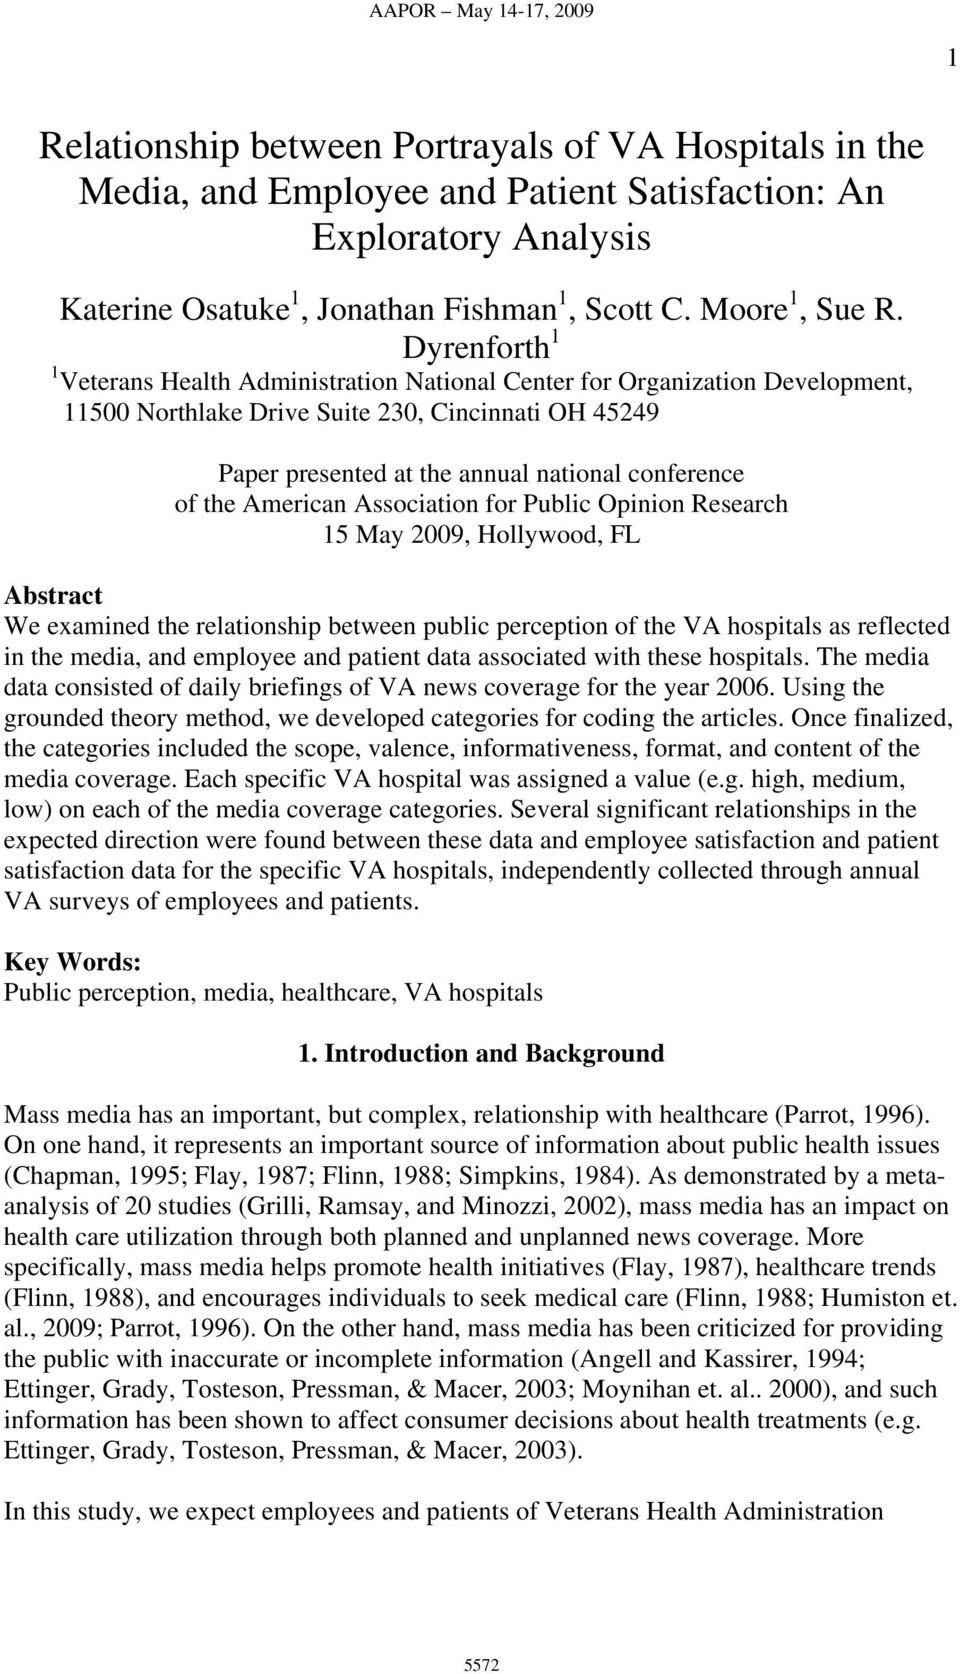 the American Association for Public Opinion Research 15 May 2009, Hollywood, FL Abstract We examined the relationship between public perception of the VA hospitals as reflected in the media, and